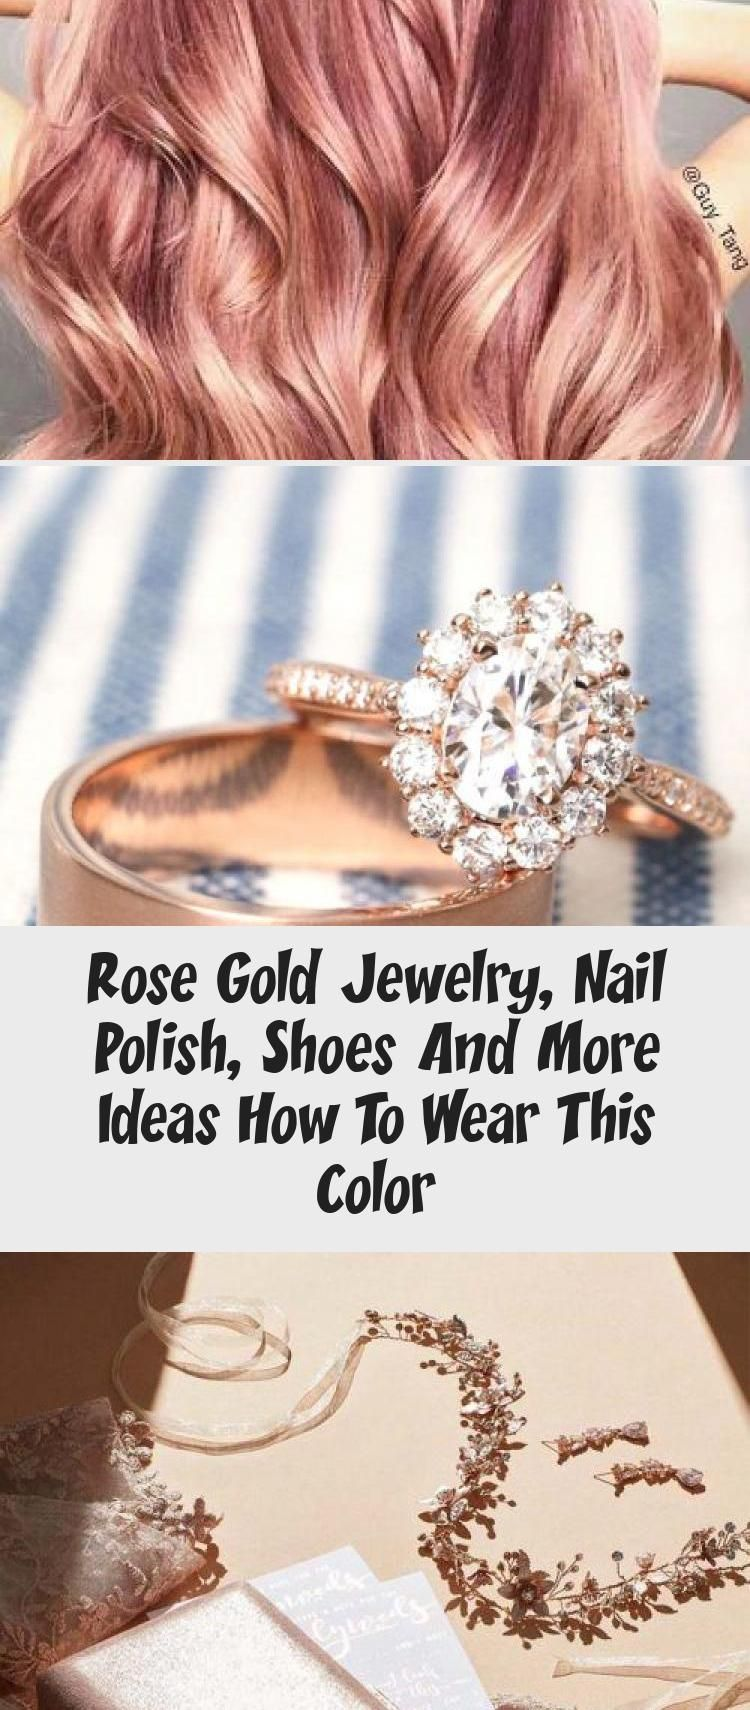 Photo of Rose Gold Jewelry, Nail Polish, Shoes And More Ideas How To Wear This Color